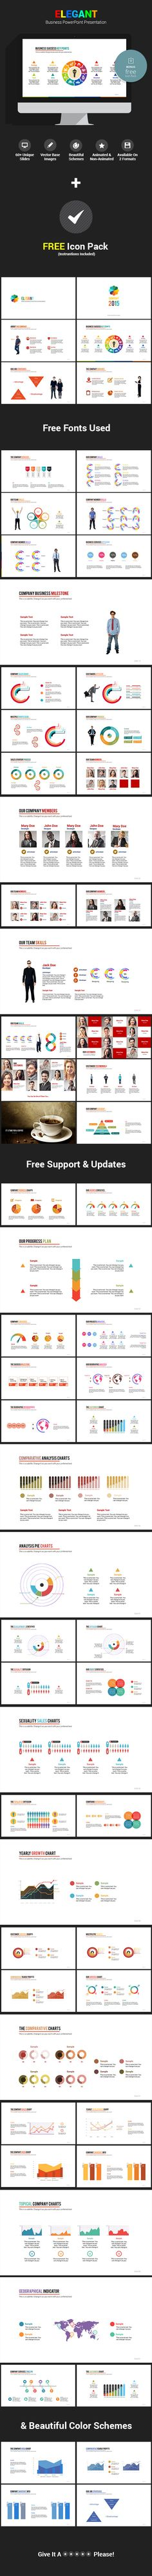 Elegant - Business PowerPoint Presentation Template #design Download: http://graphicriver.net/item/elegant-business-powerpoint-presentation/11774899?ref=ksioks